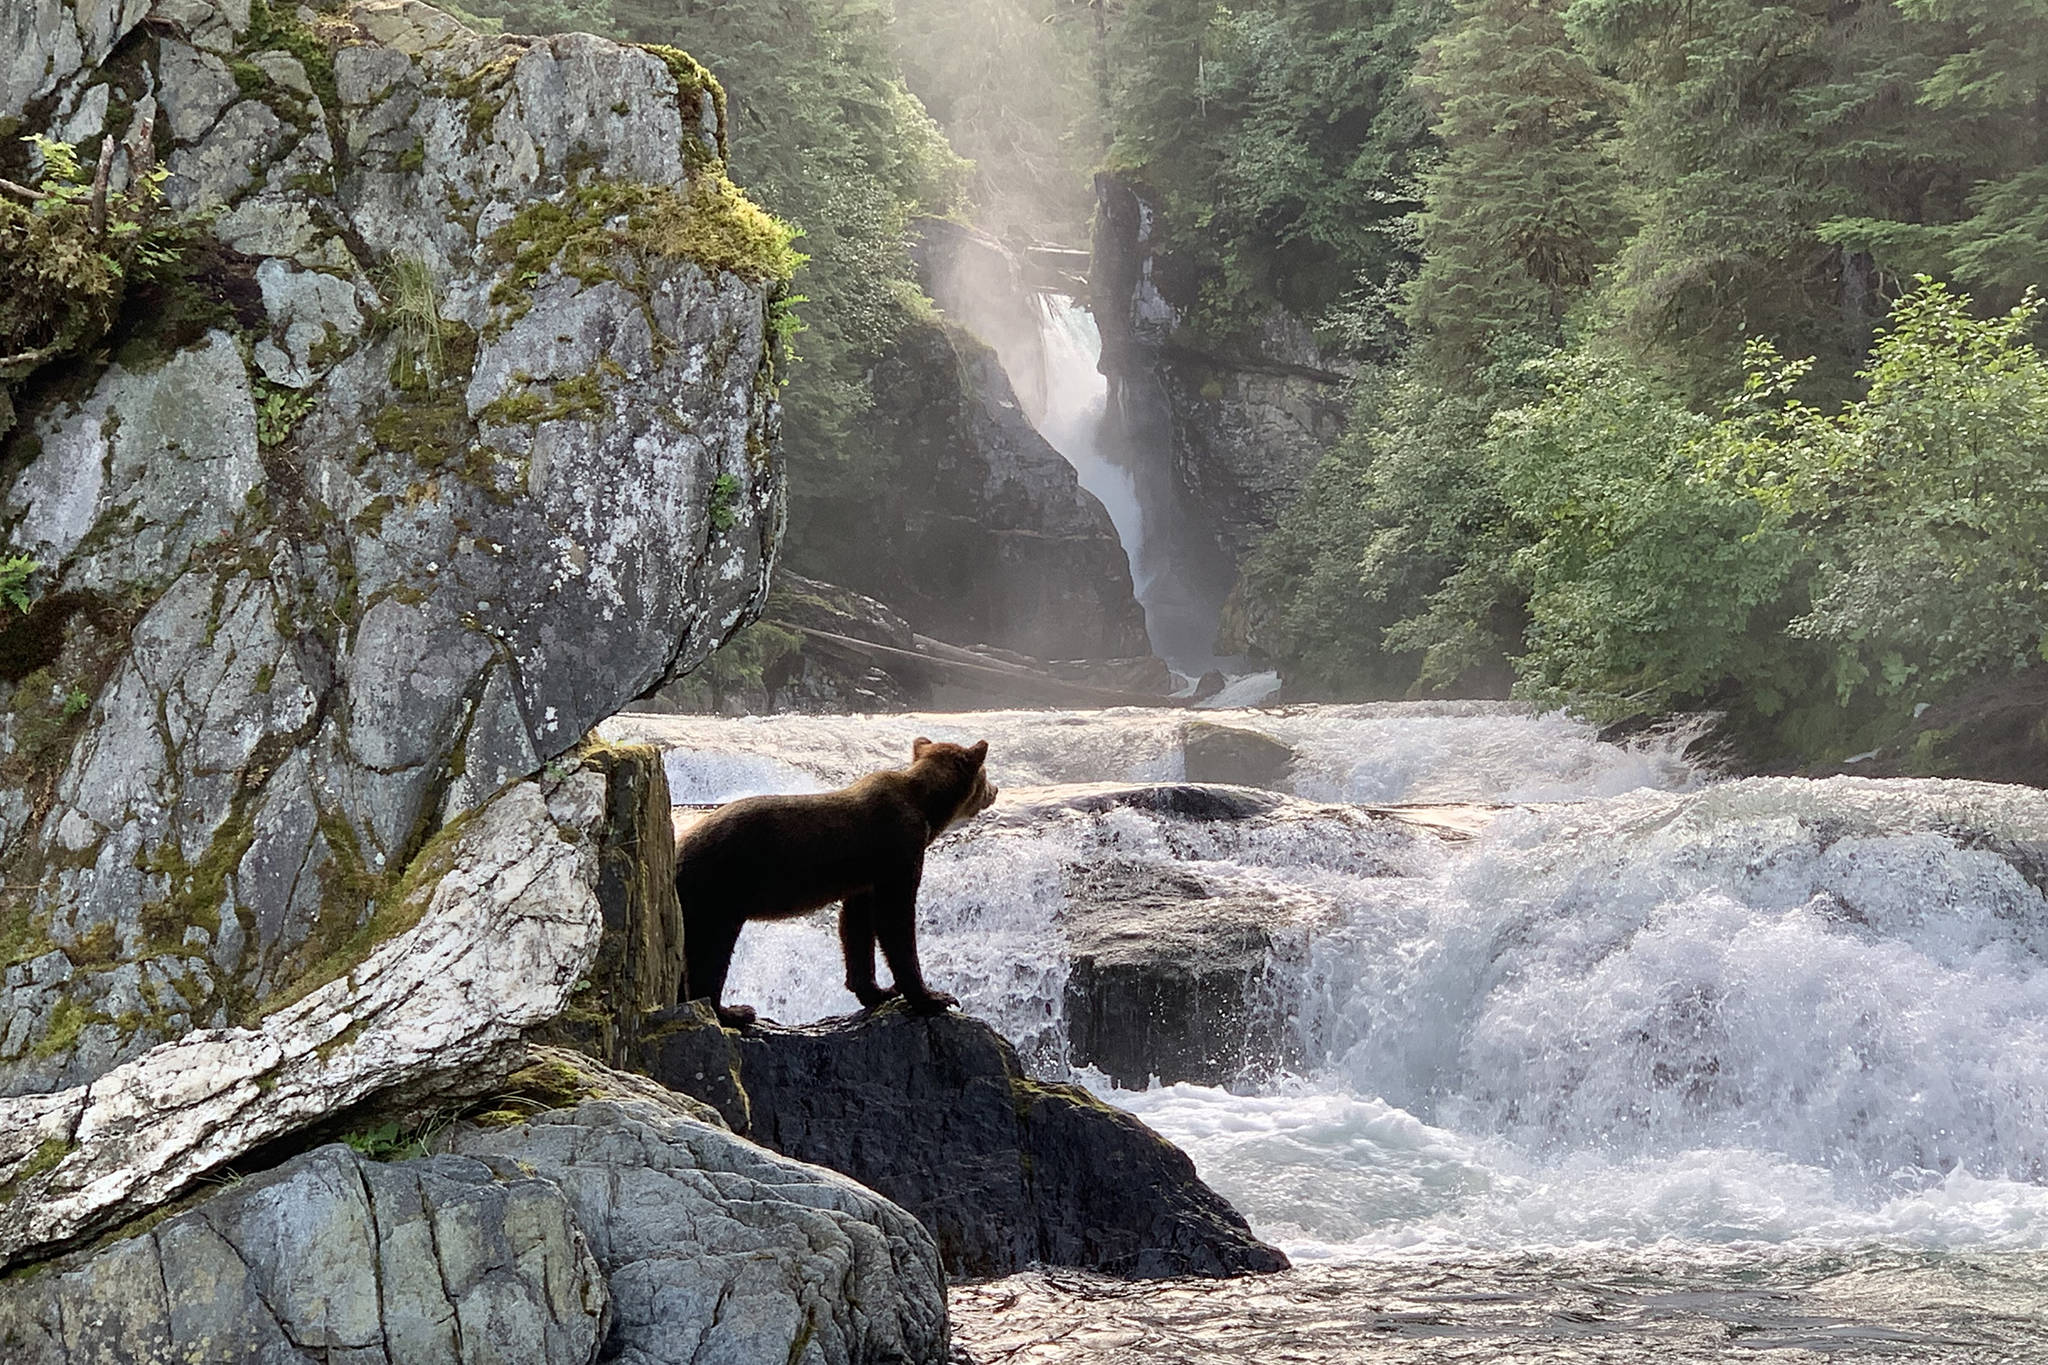 A bear looks out over Sweetheart Creek on Tuesday, July 30, 2019. (Courtesy Photo | Kim Hollingsworth)